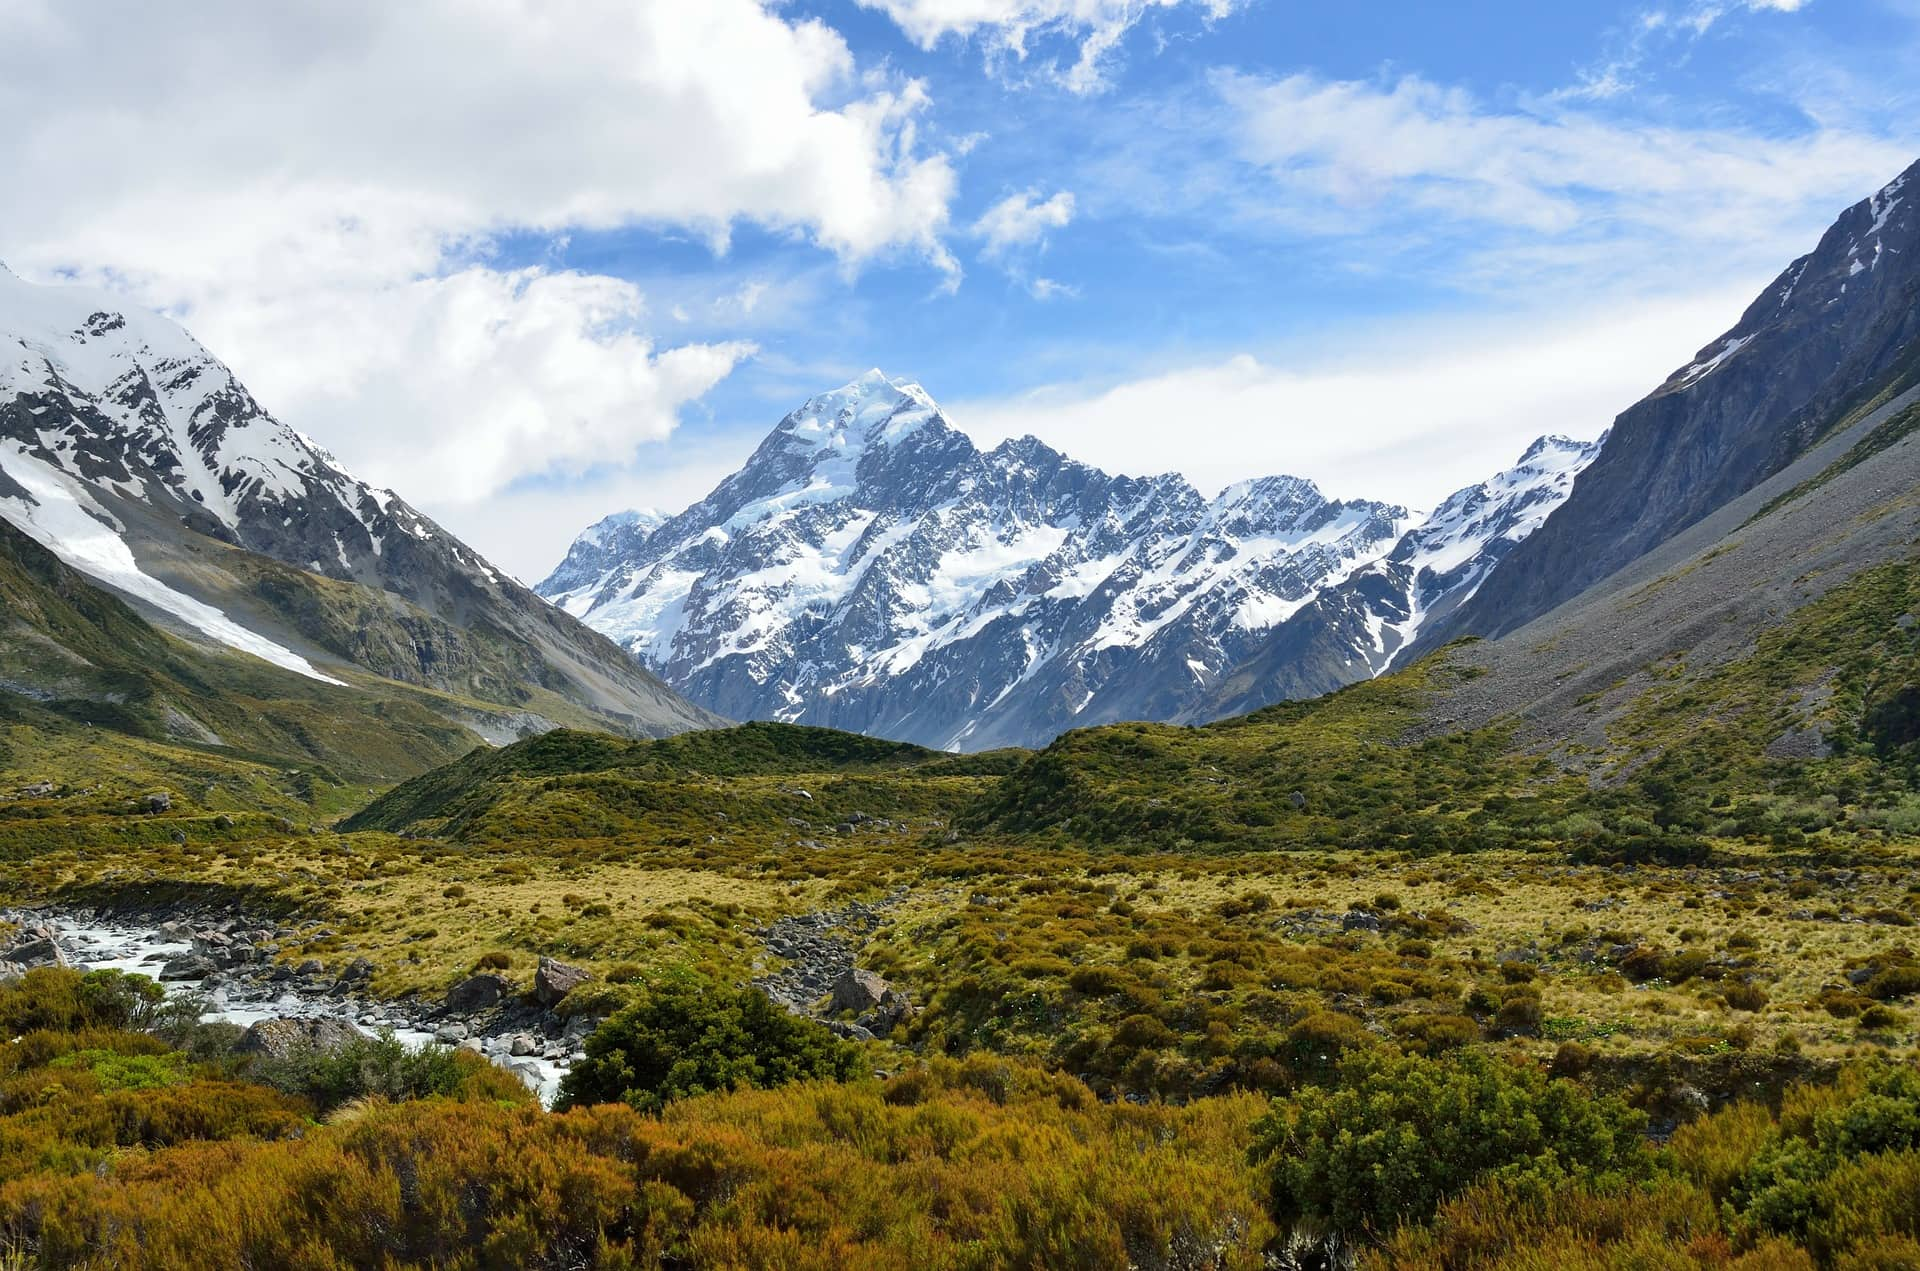 20 of the Greatest Road Trips of New Zealand